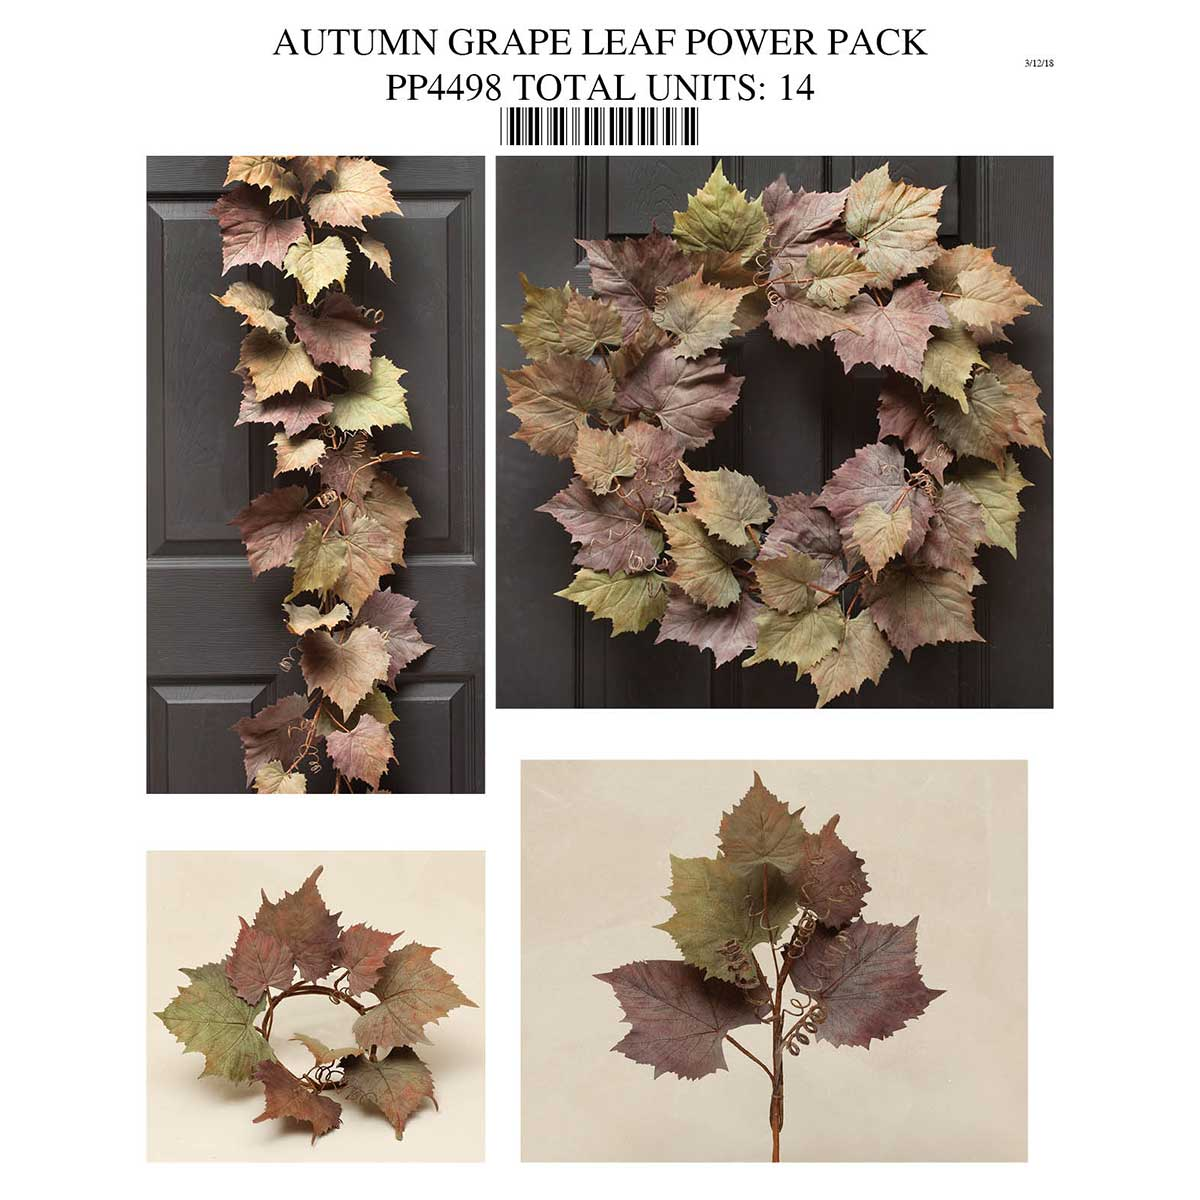 Grape Leaf Power Pack Collection 14 Units